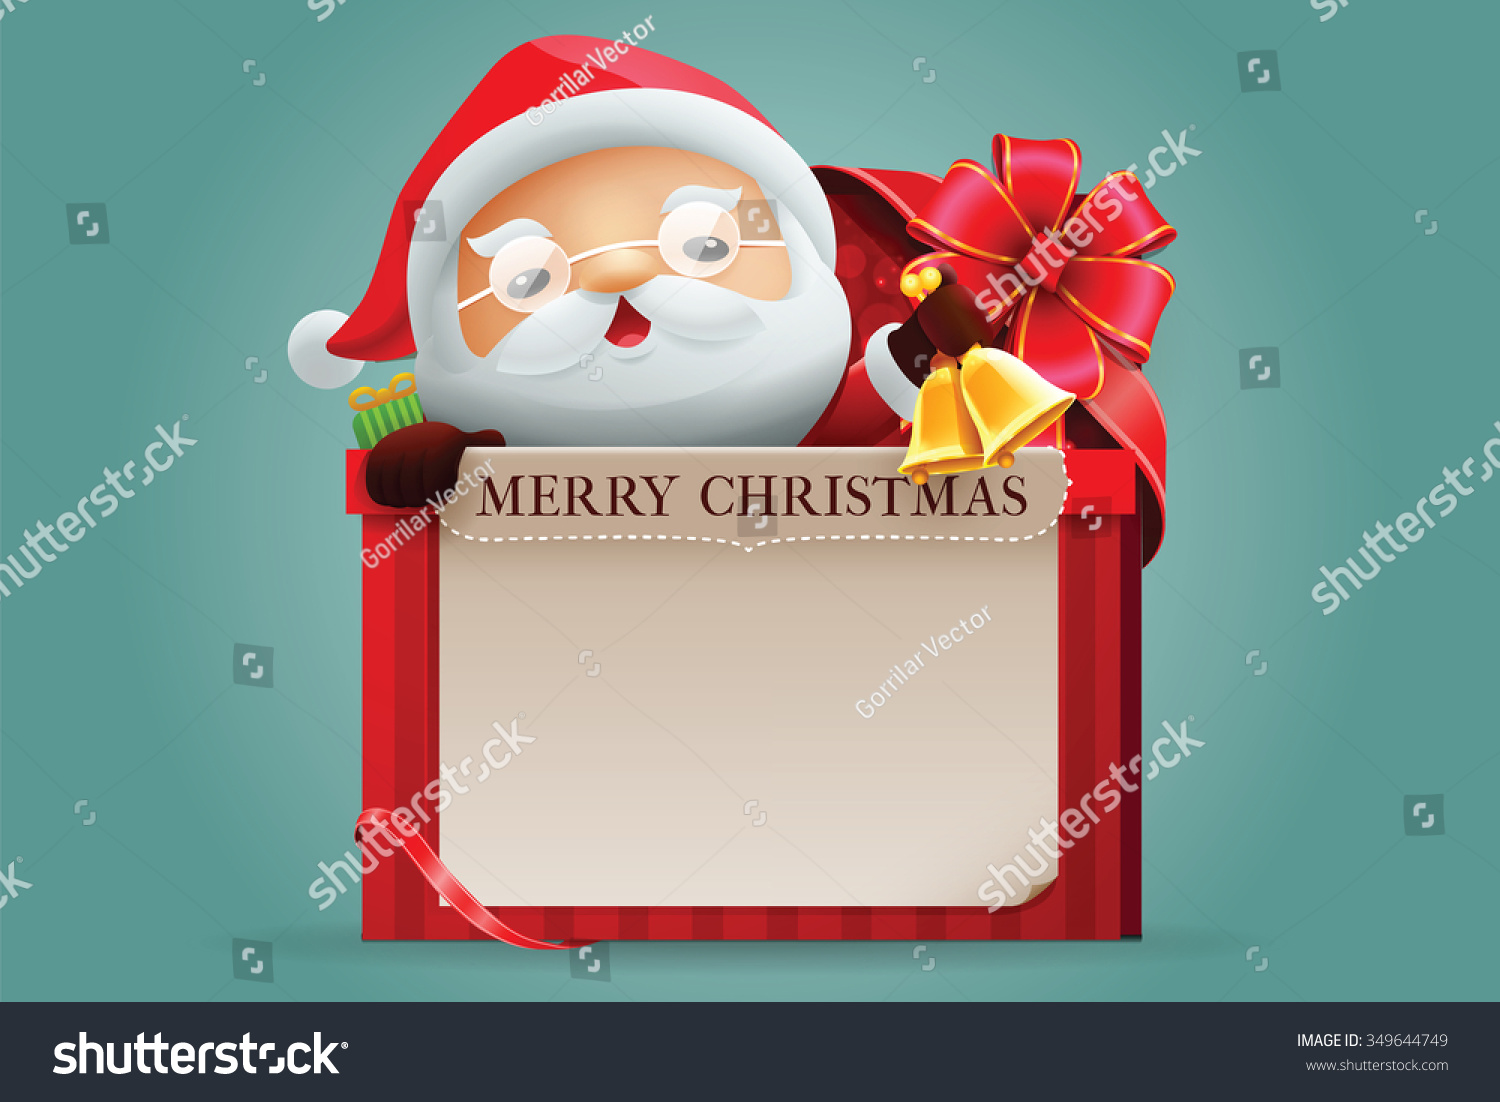 Merry Christmas Gift Card Stock Vector (Royalty Free) 349644749 ...